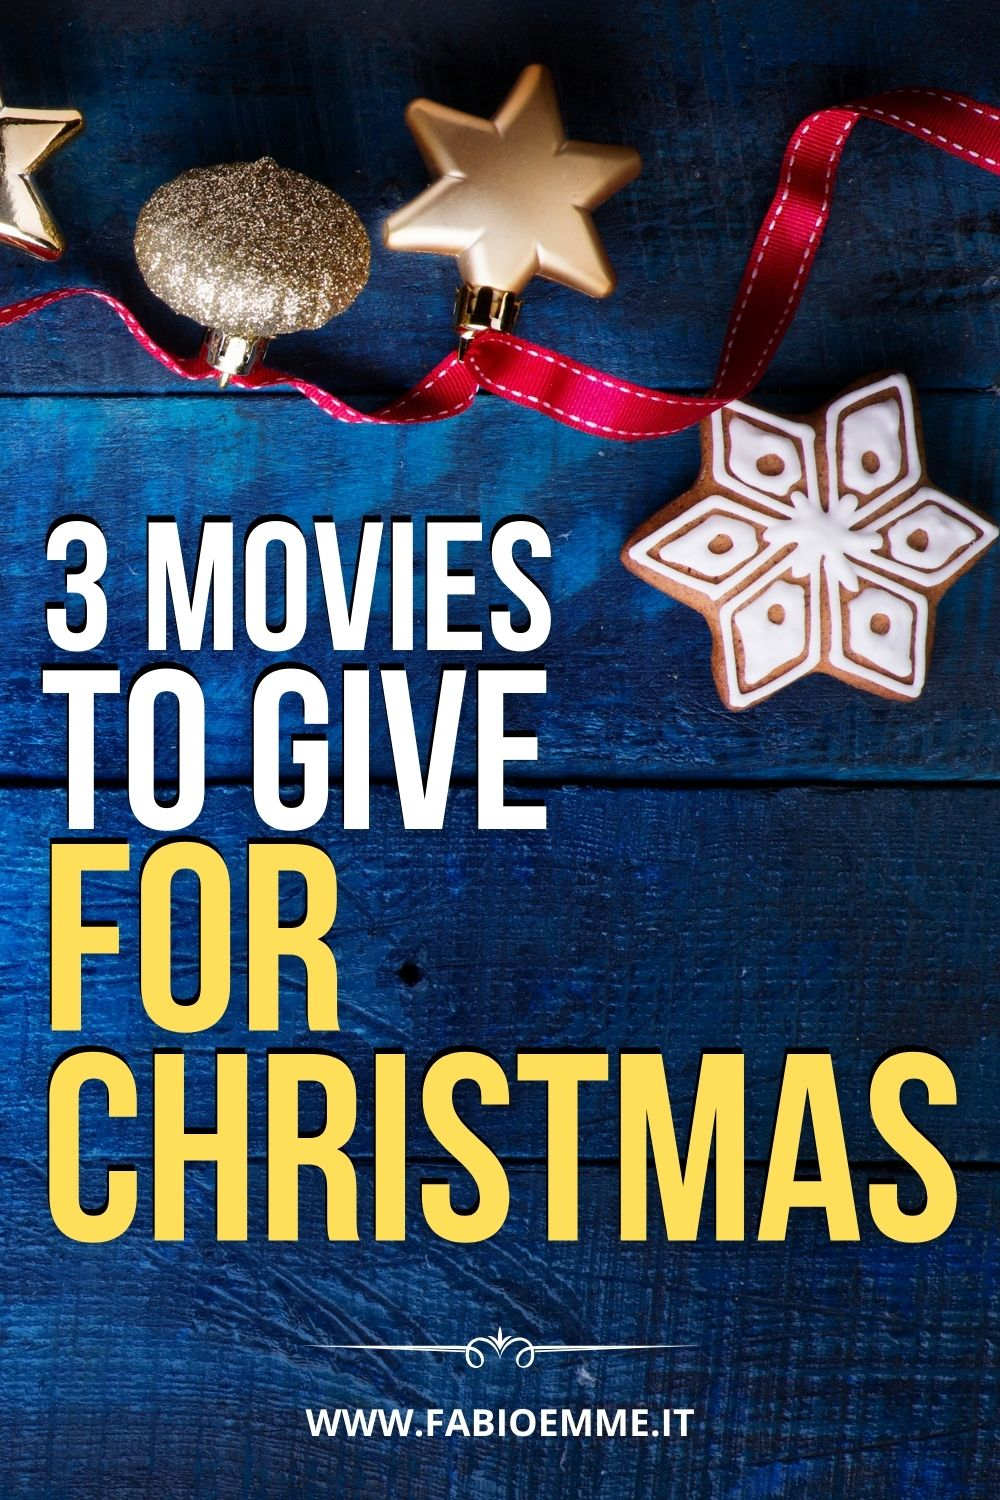 3 Movies to Give for Christmas